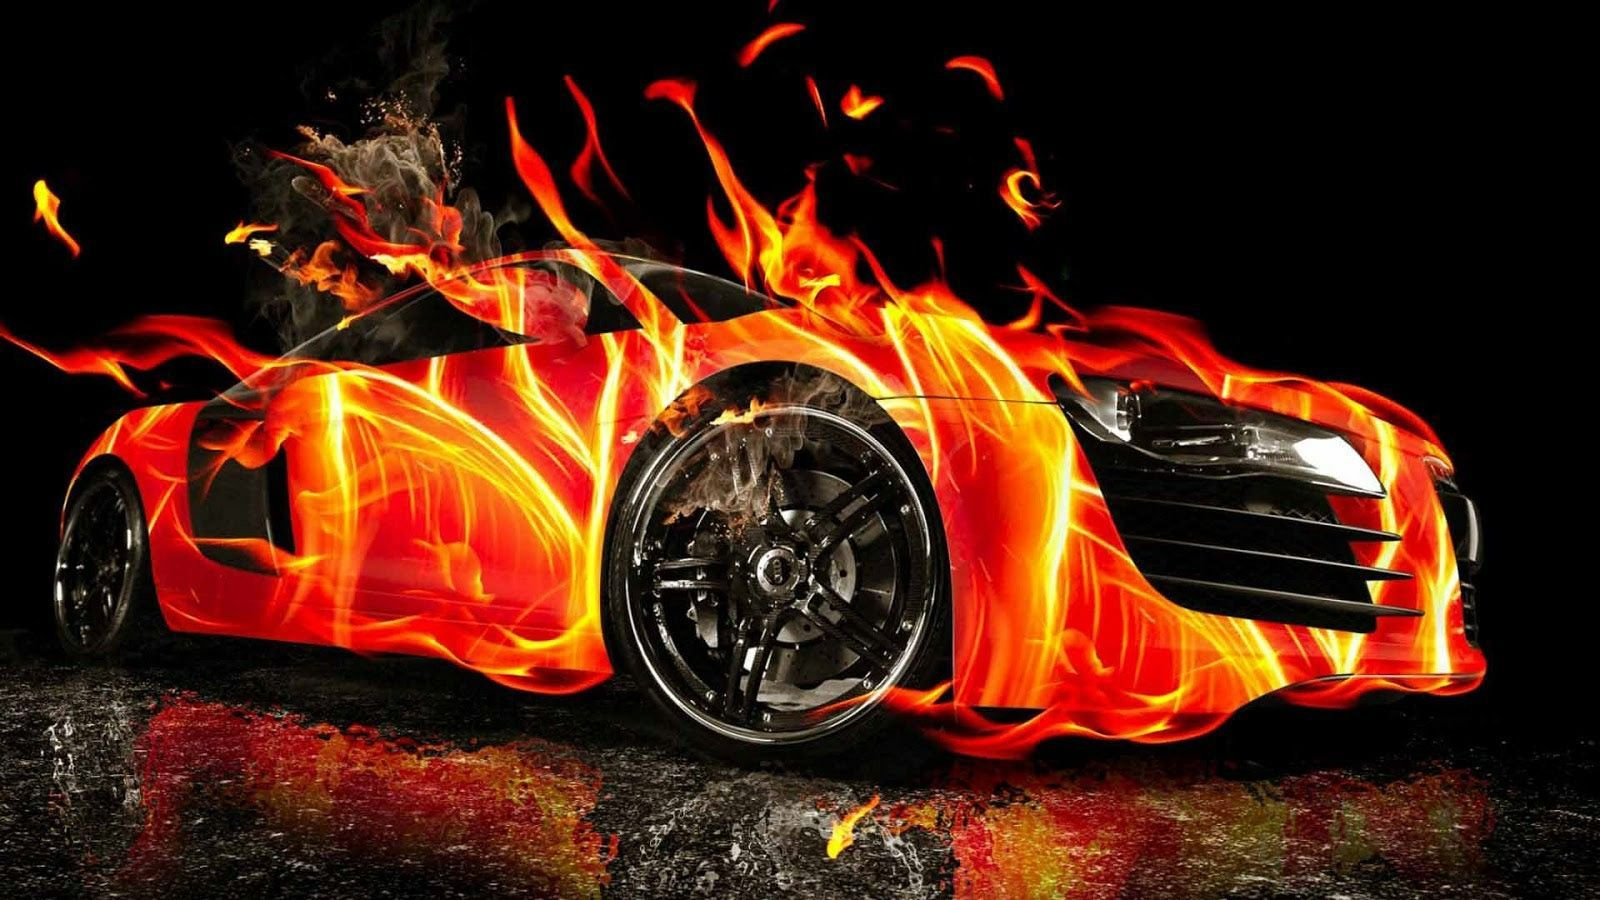 Fire Cars Wallpapers Top Free Fire Cars Backgrounds